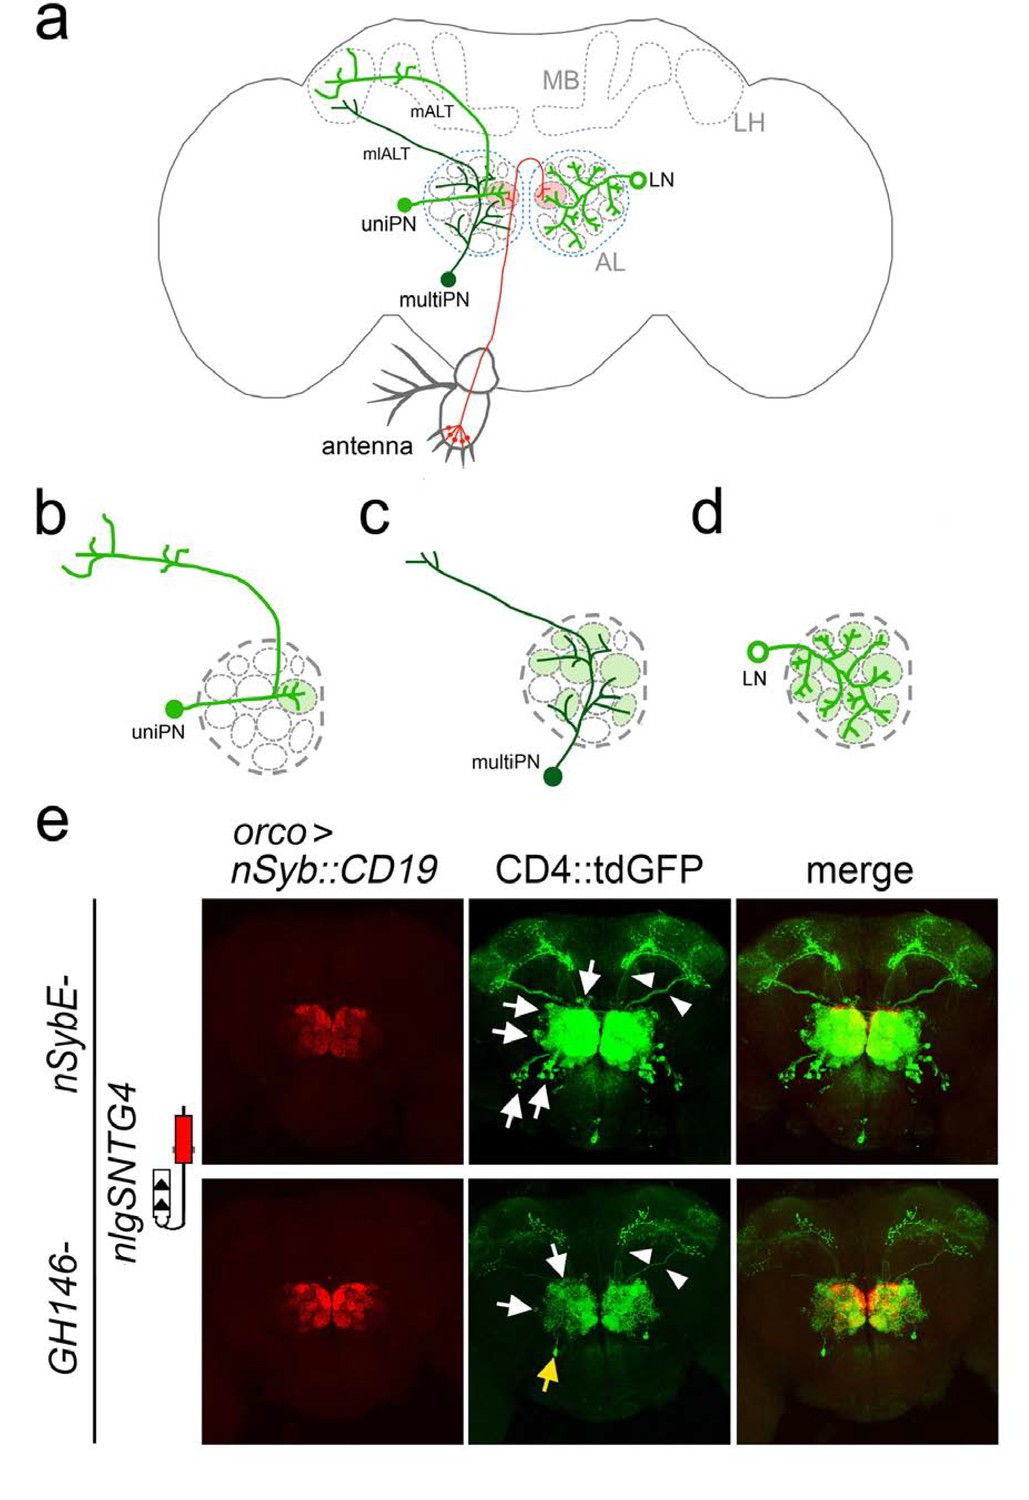 Tracing Neuronal Circuits In Transgenic Animals By Transneuronal Led Light Organ Circuit Diagram Lab Connections Between Olfactory Receptor Neurons And Antennal Lobe Revealed Tract